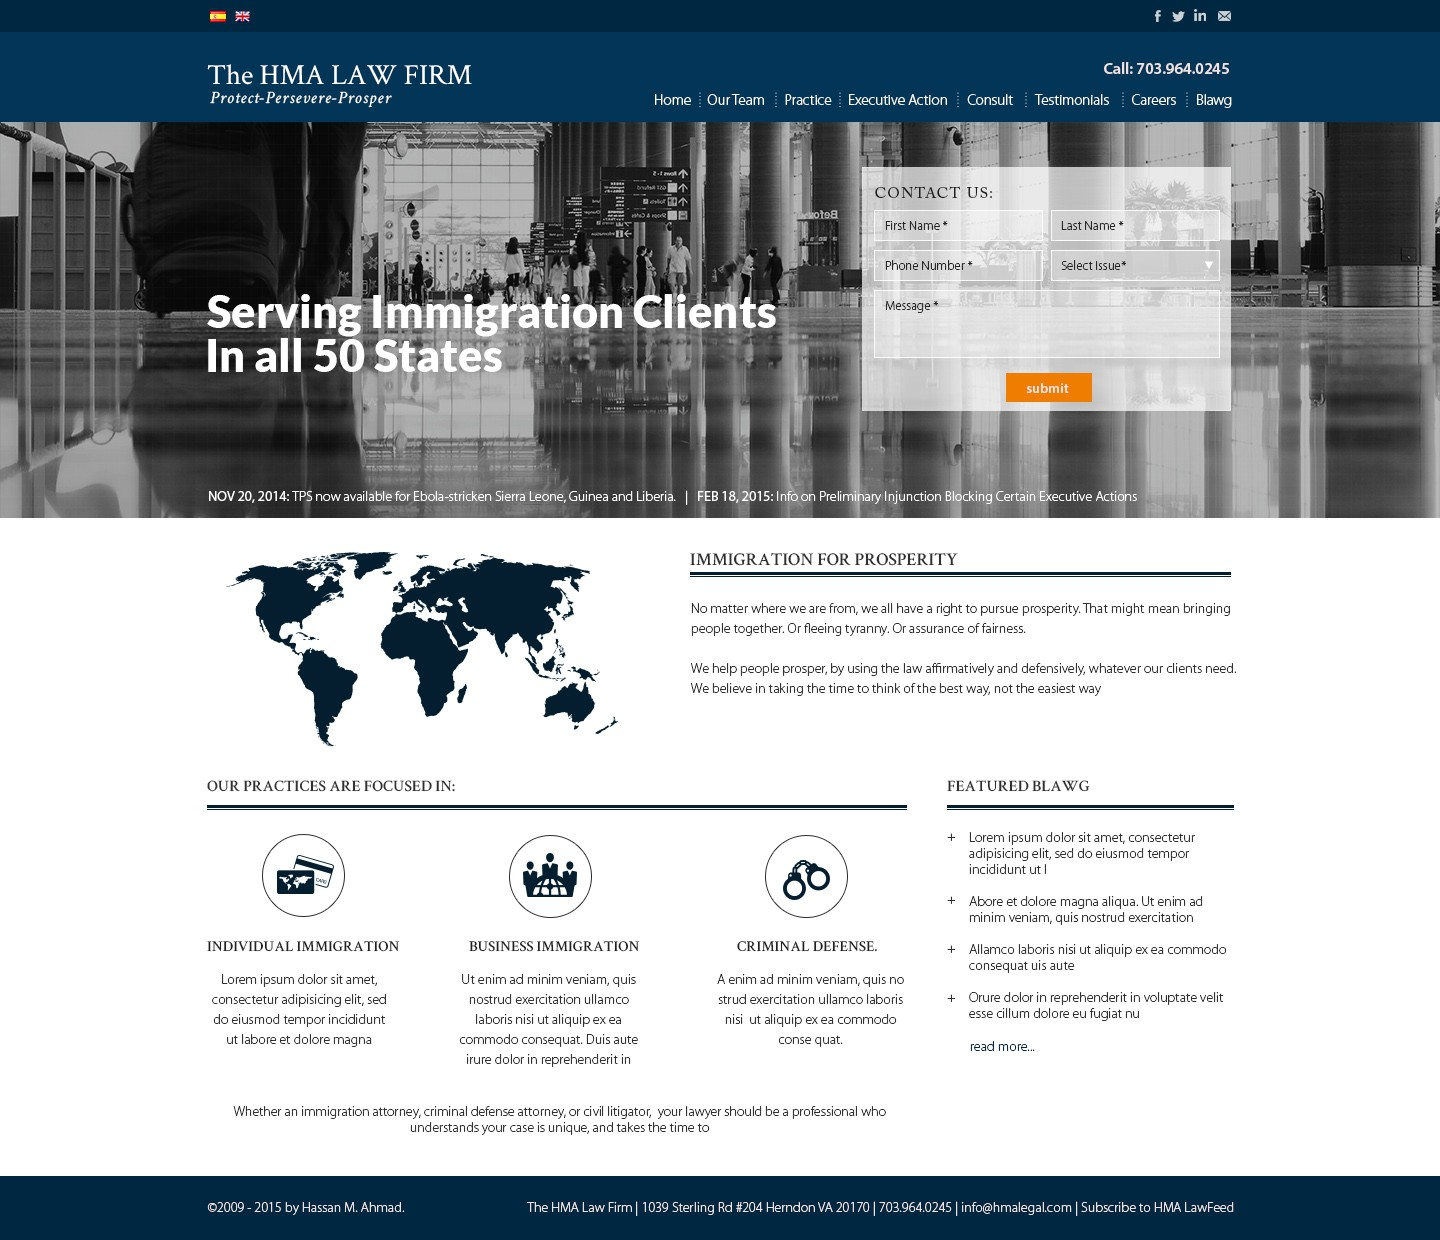 Landing Page Design for Immigration Law Firm